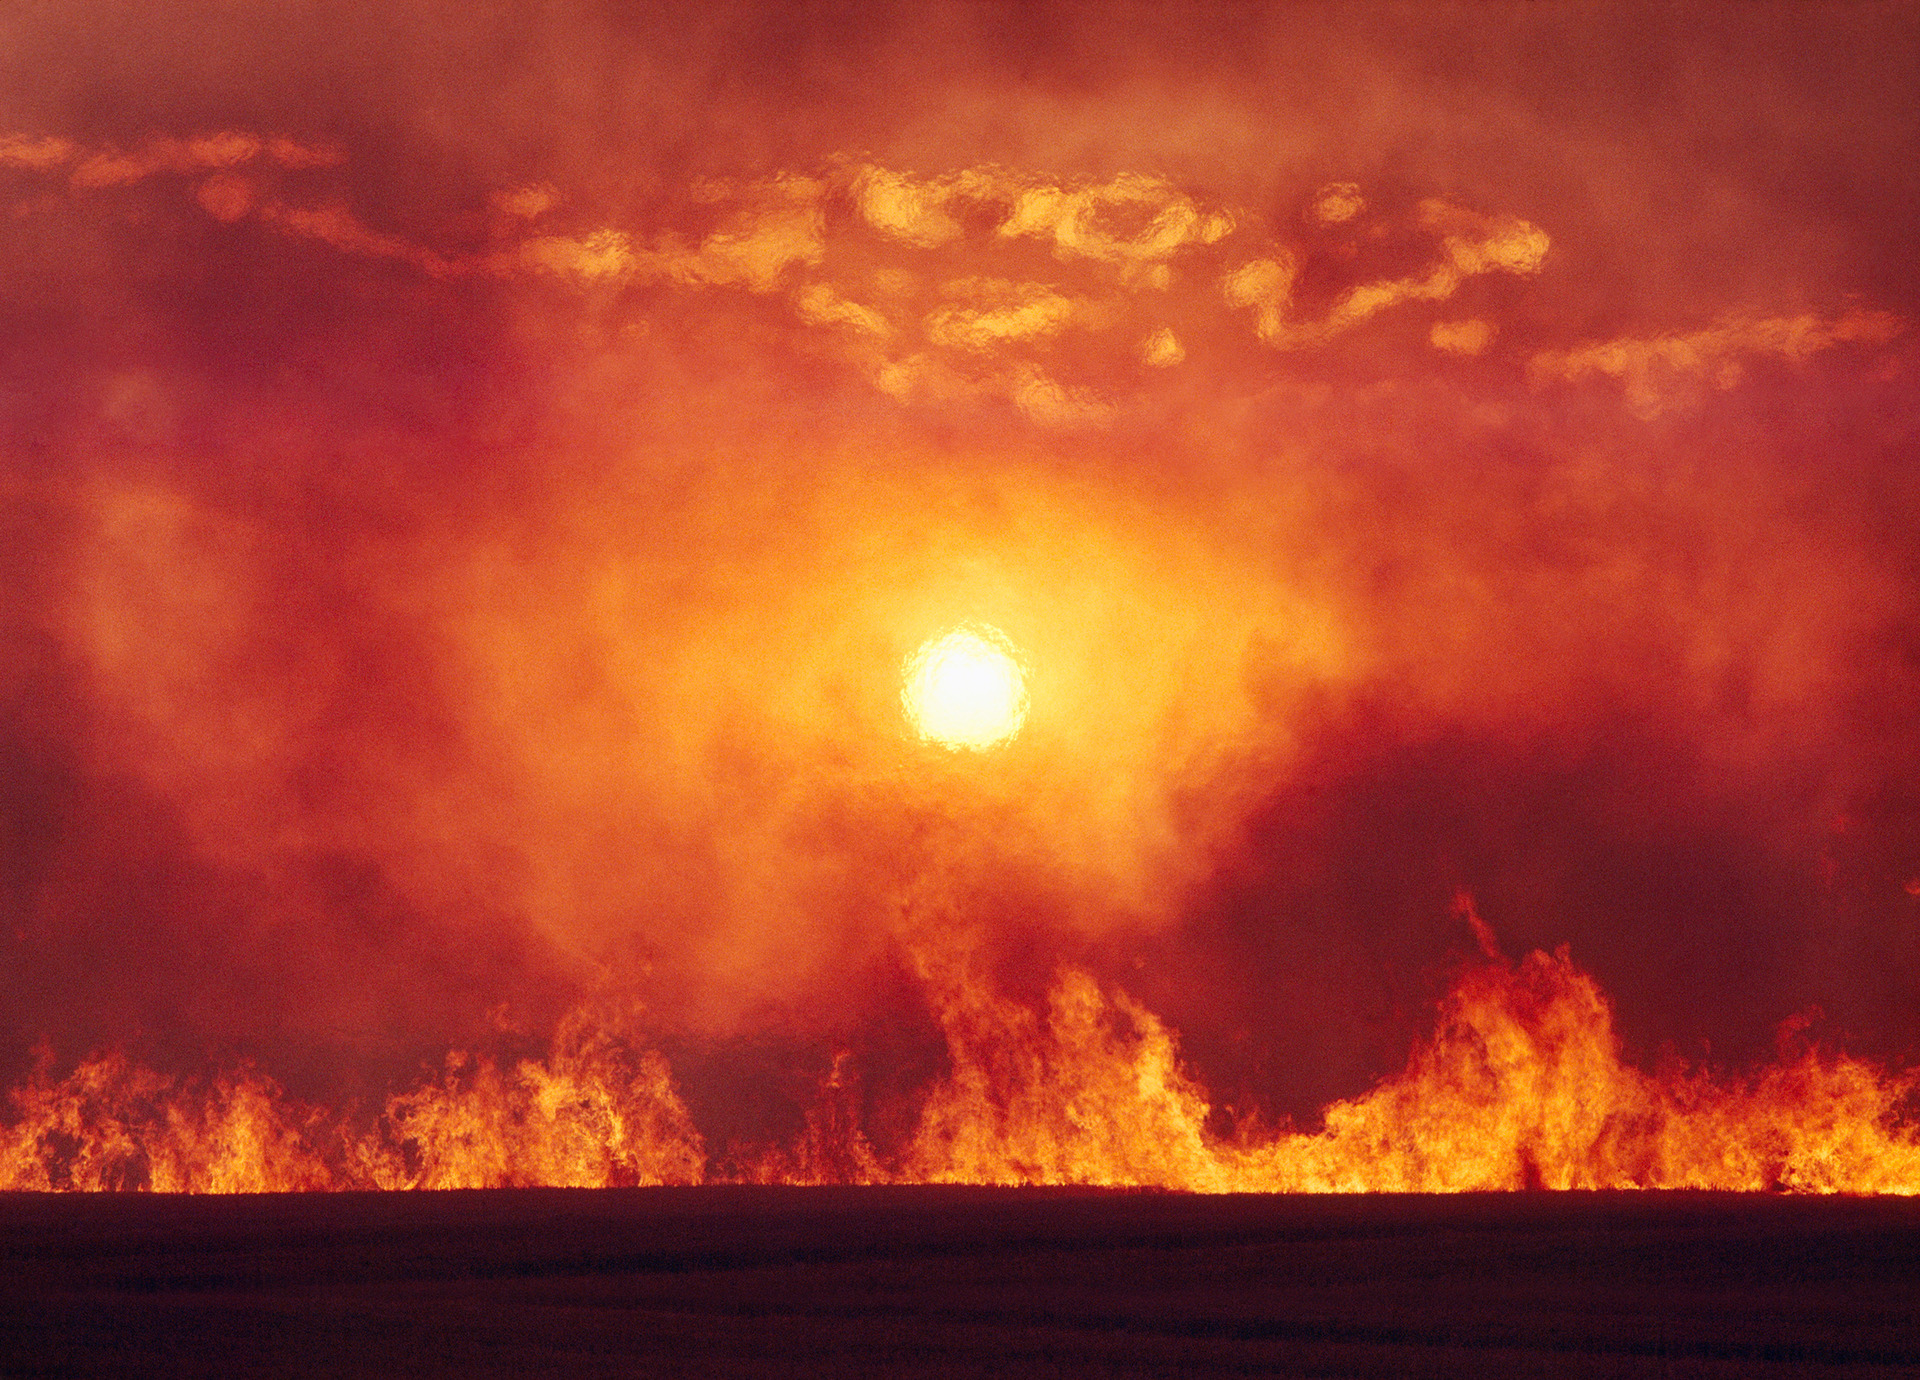 Seconds from doomsday: Why the end of the world is closer than ever